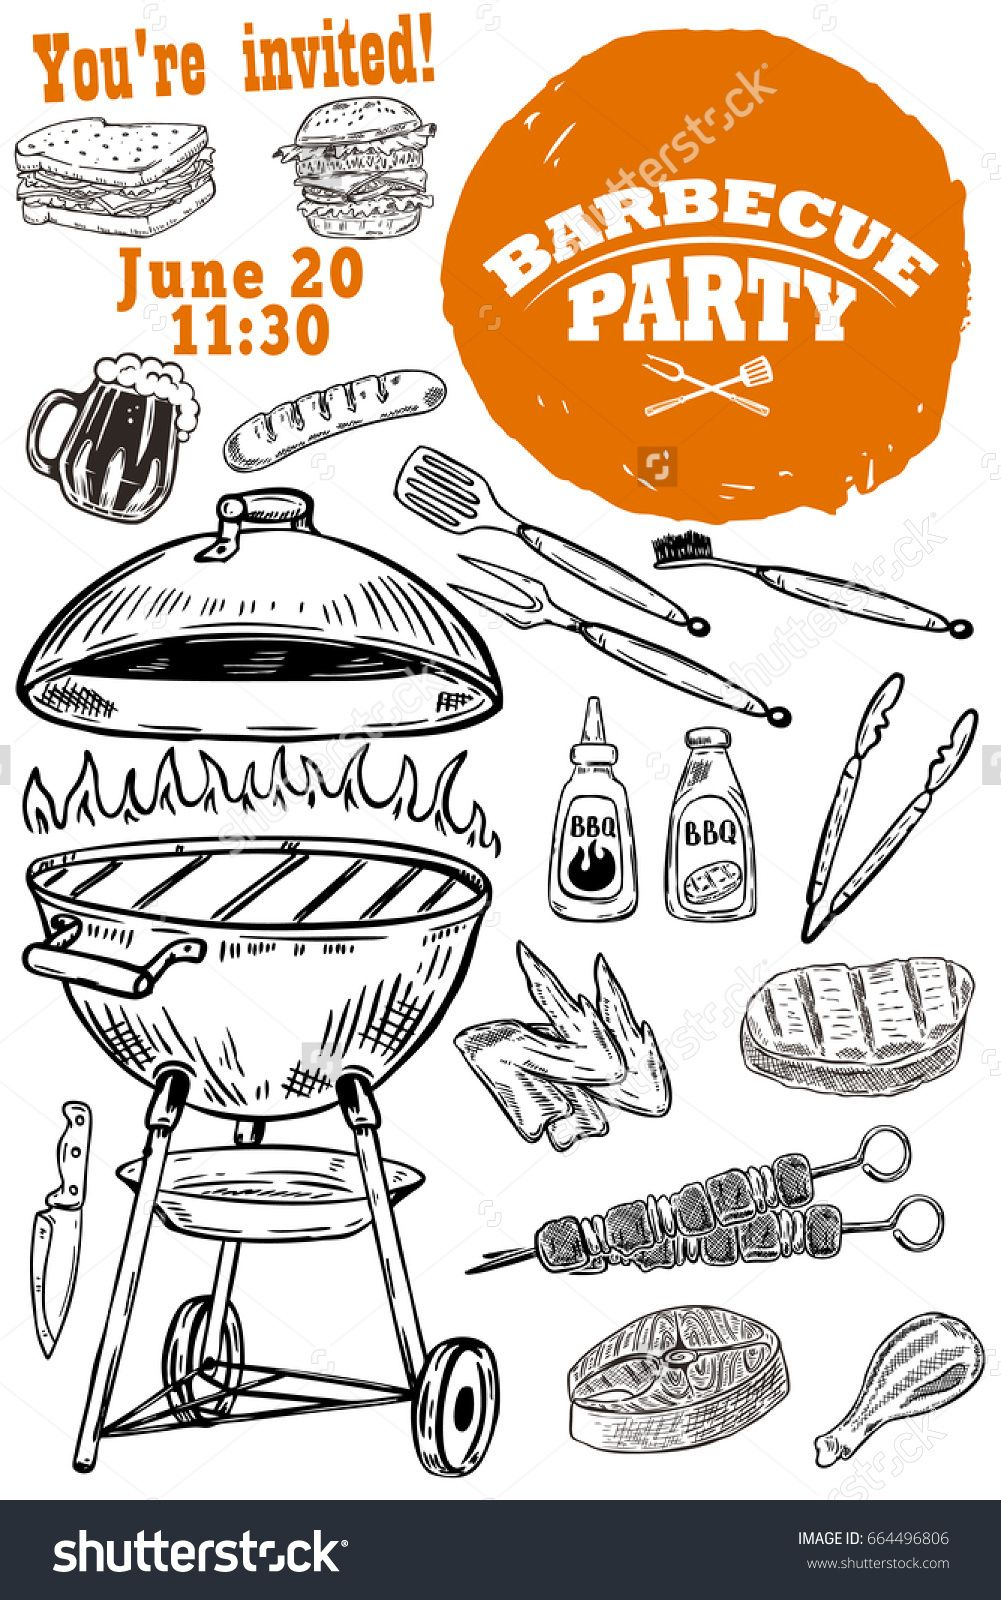 Barbecue party invitation template hand drawn bbq and grill design barbecue party invitation template hand drawn bbq and grill design elements ctor illustration stopboris Gallery